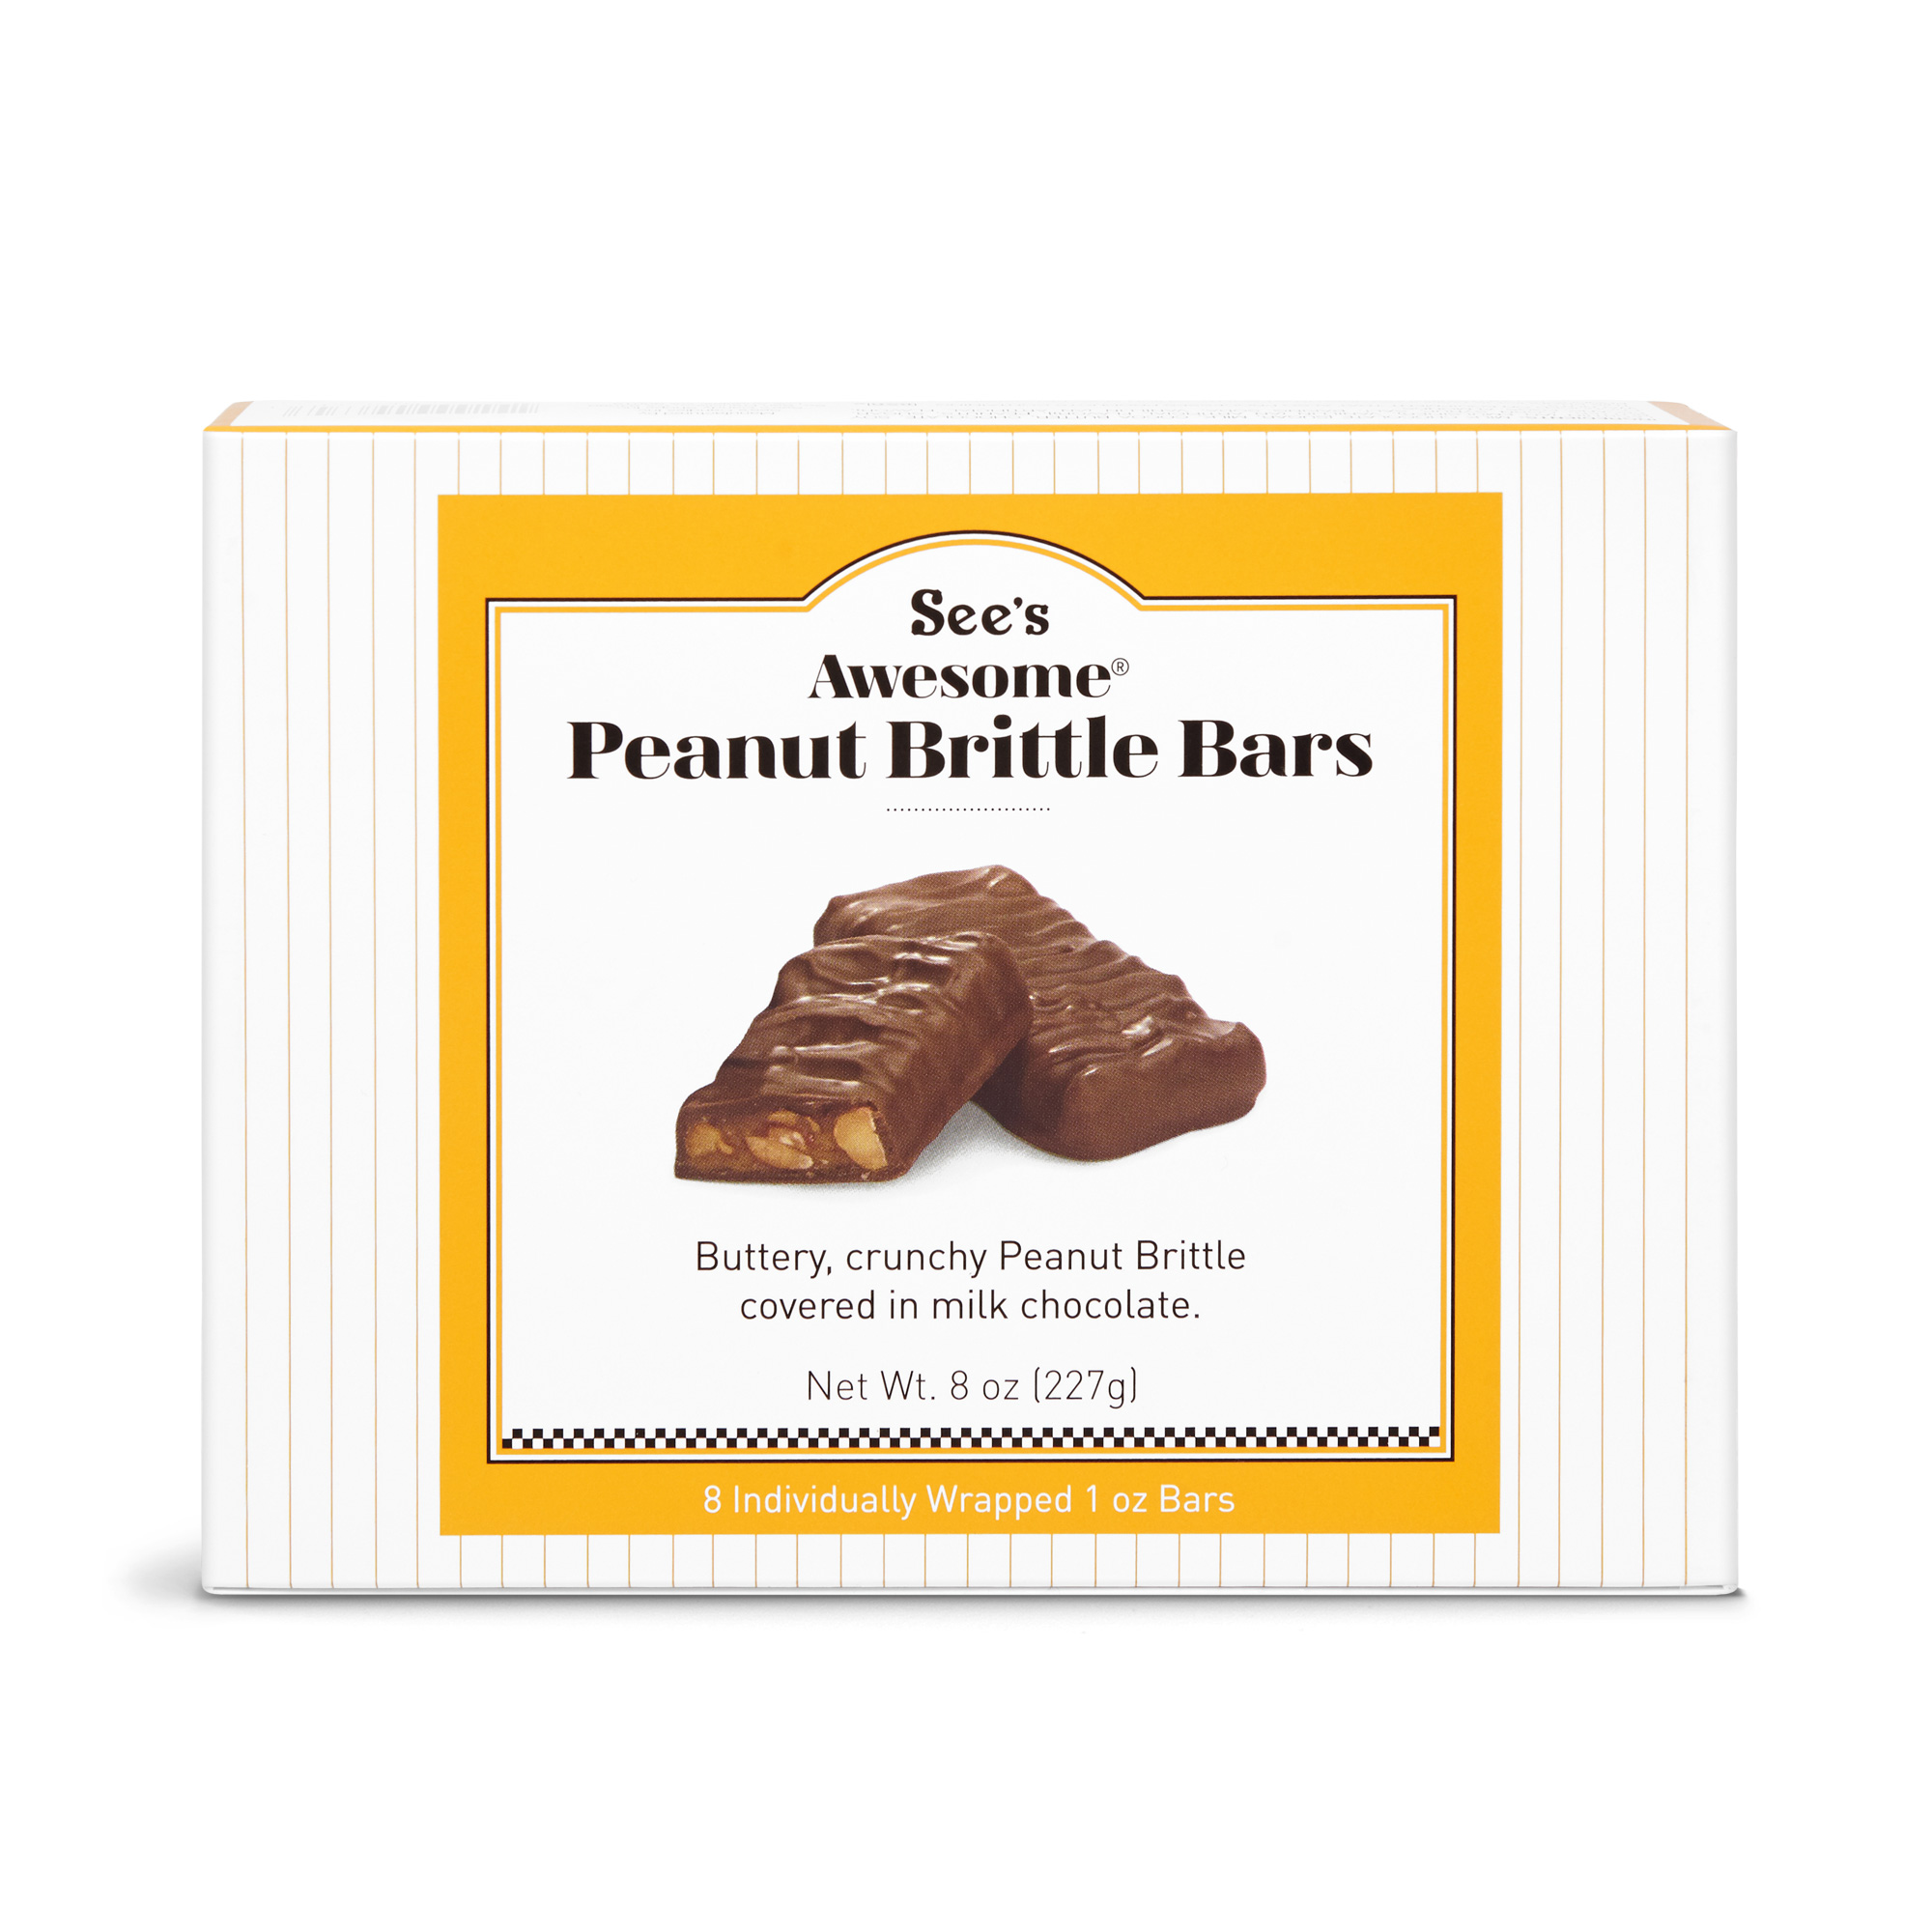 View of See's Awesome® Peanut Brittle Bars